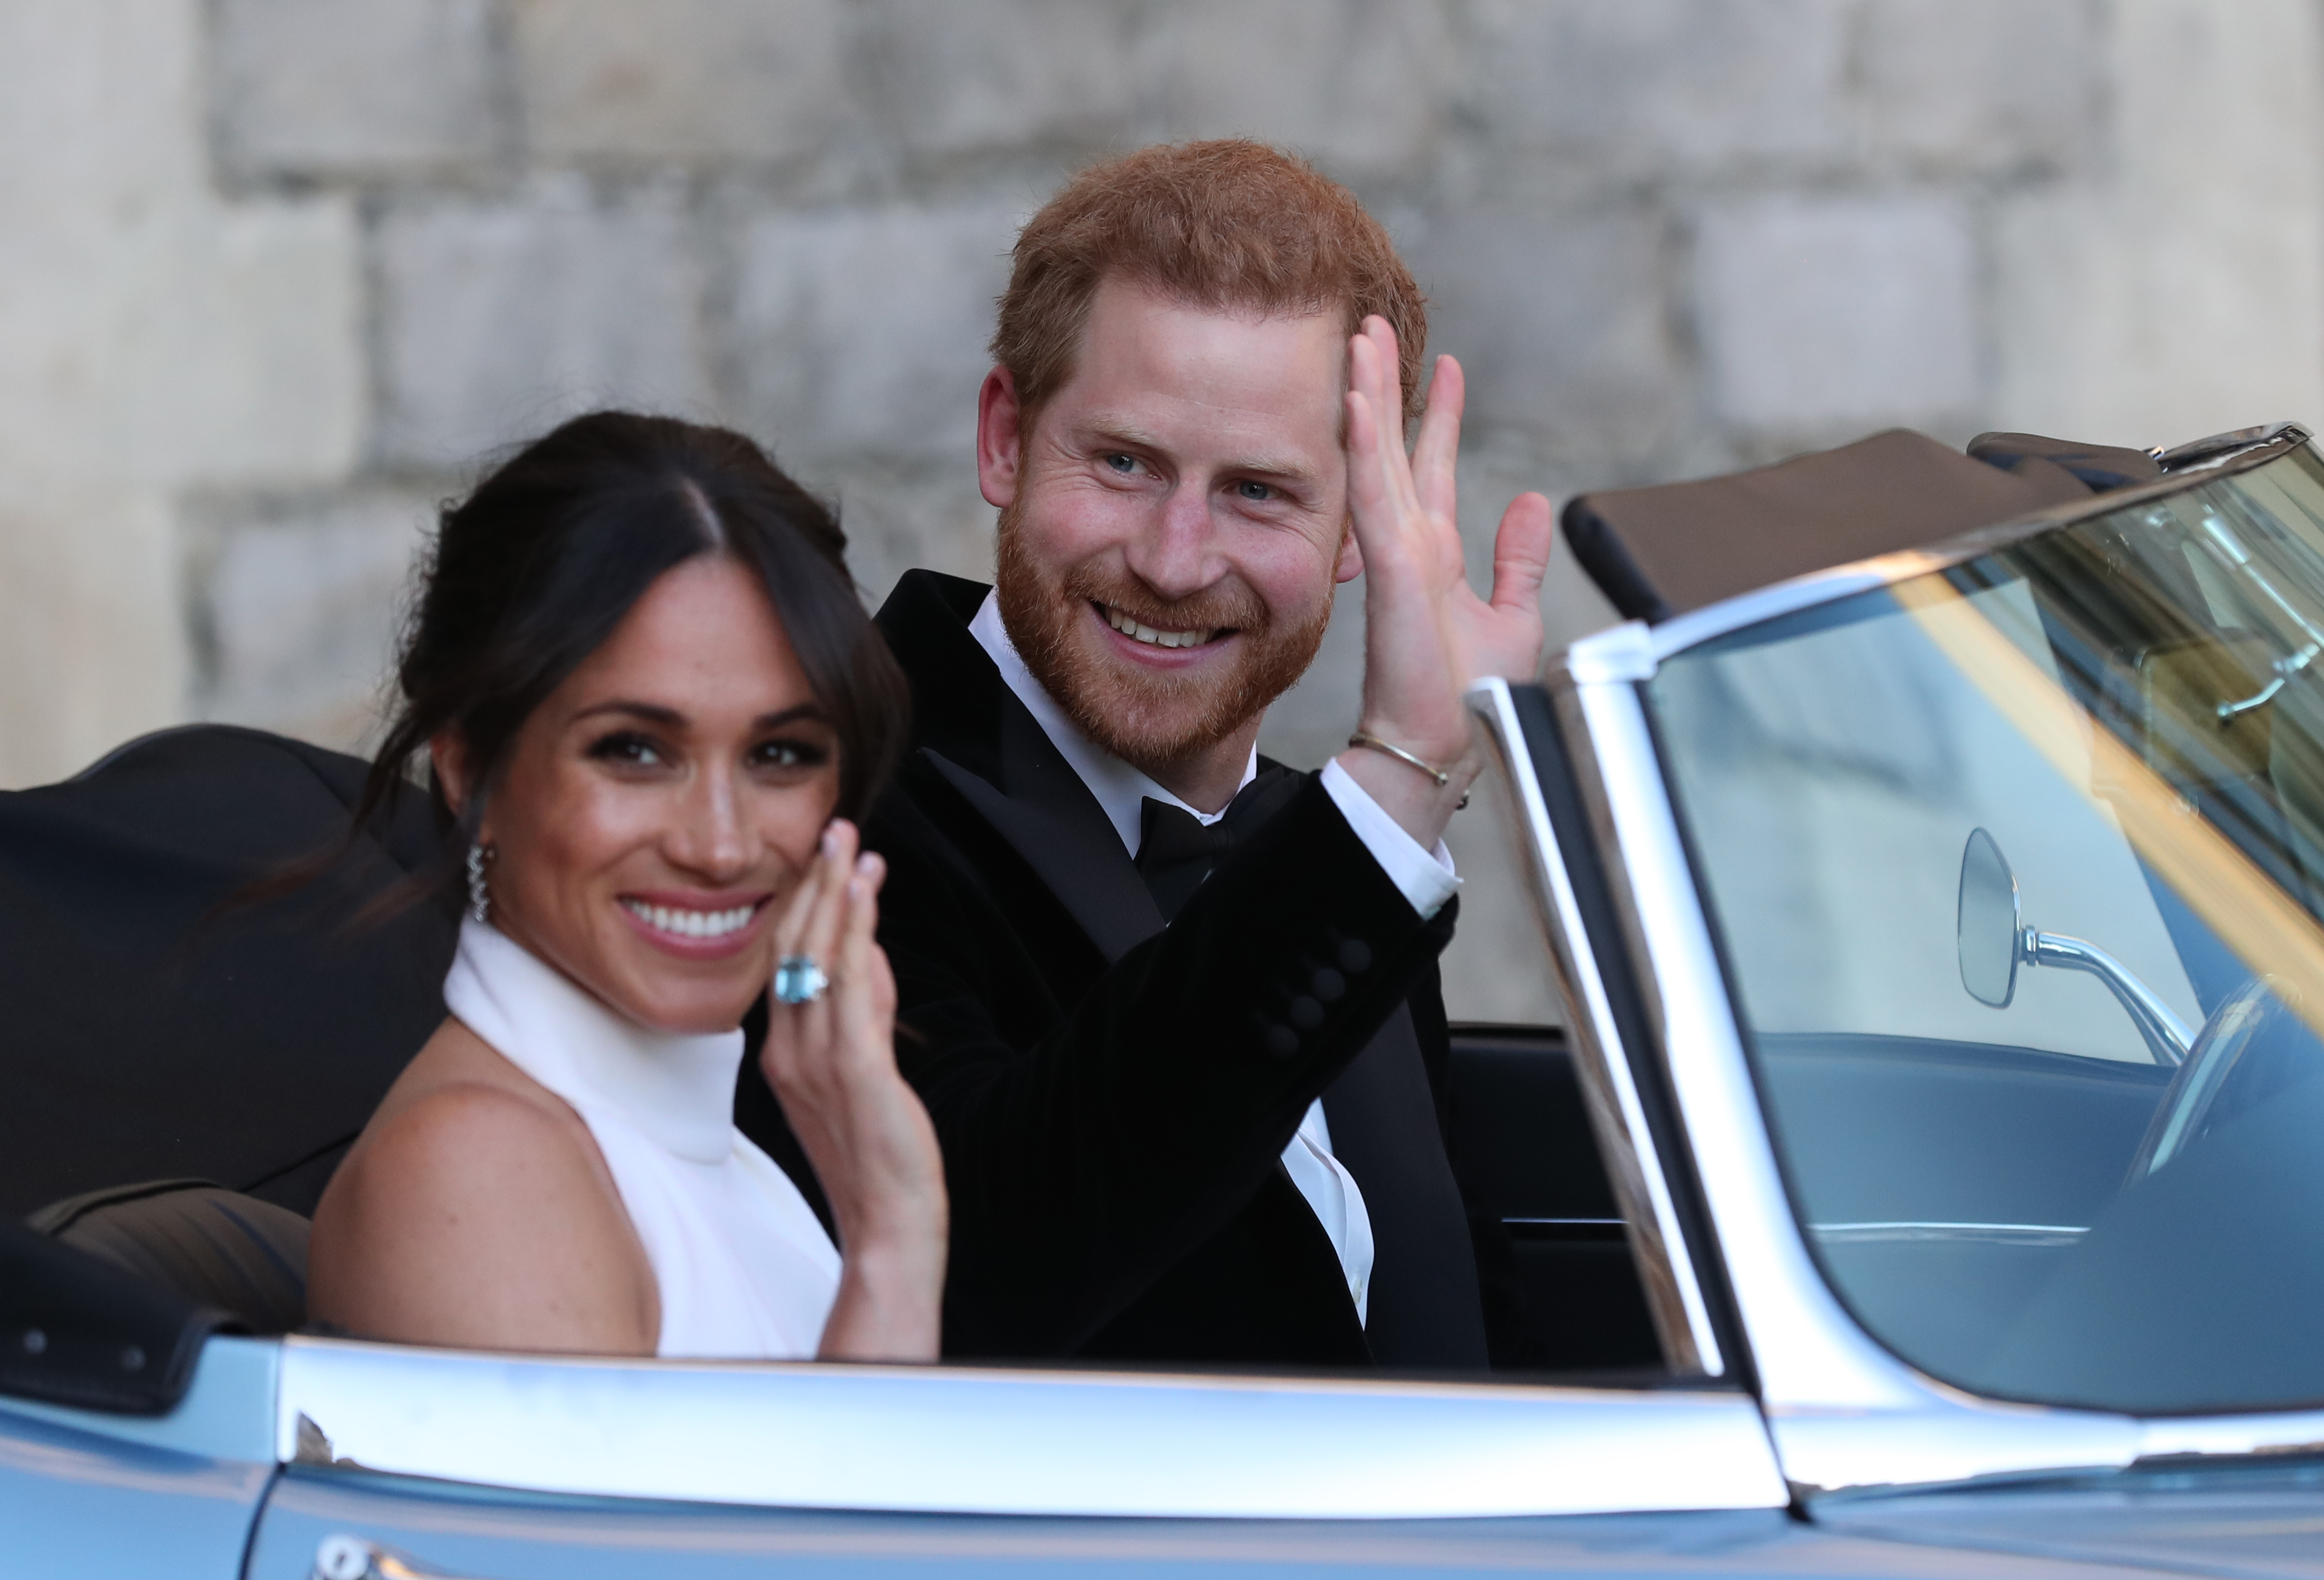 Meghan Markle, Duchess of Sussex and Prince Harry, Duke of Sussex (Source: Getty Images)